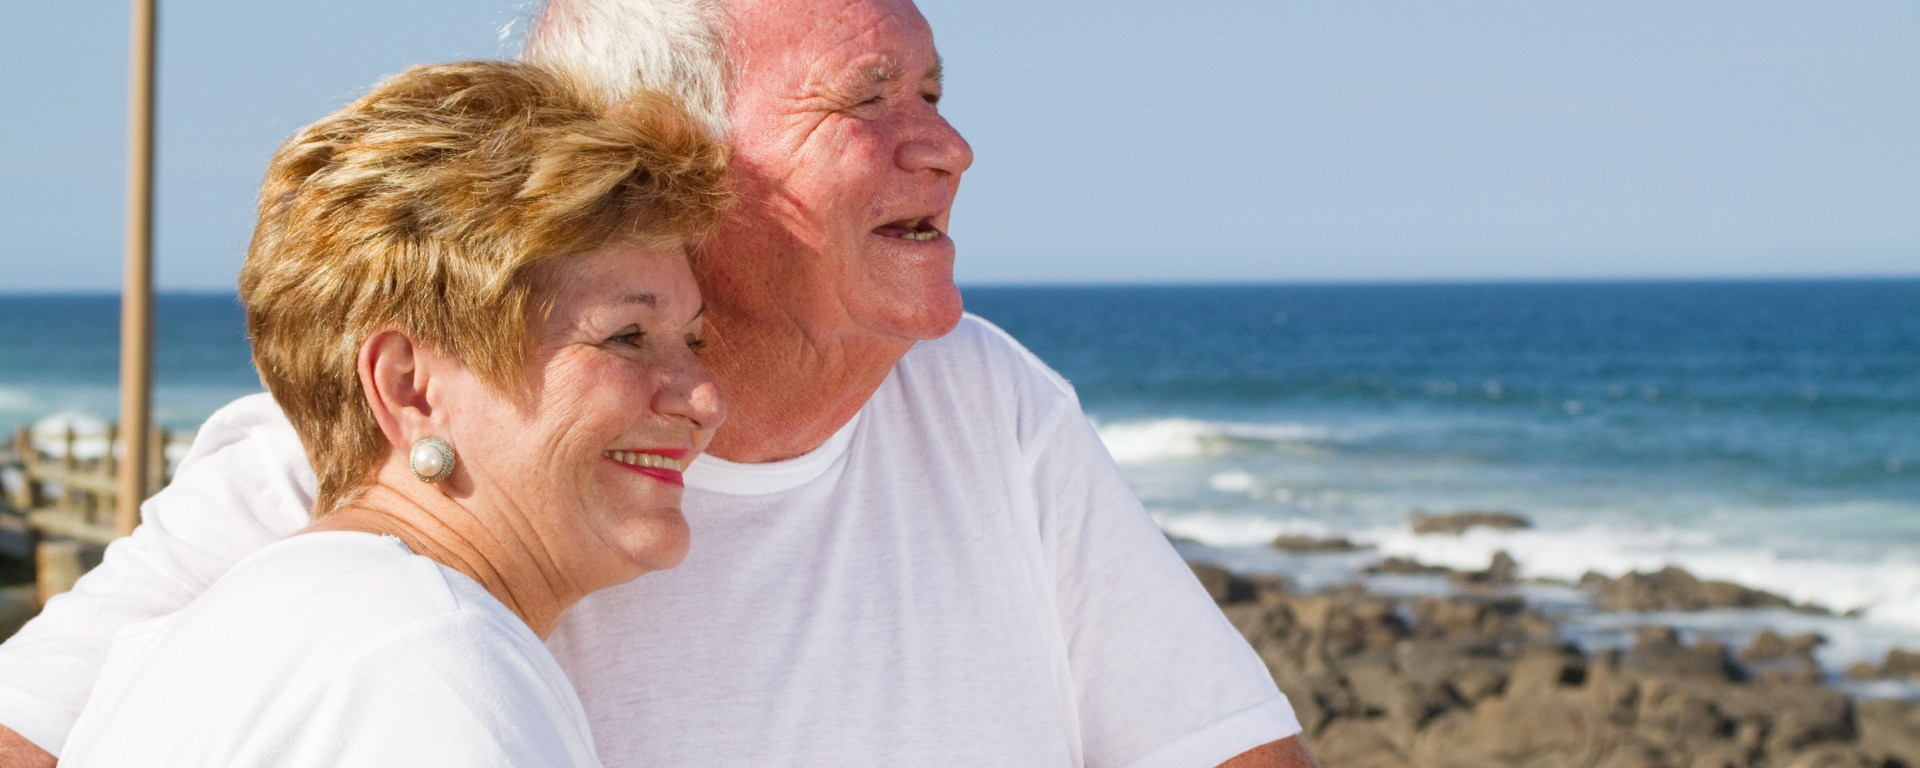 Couple smiling at beach.